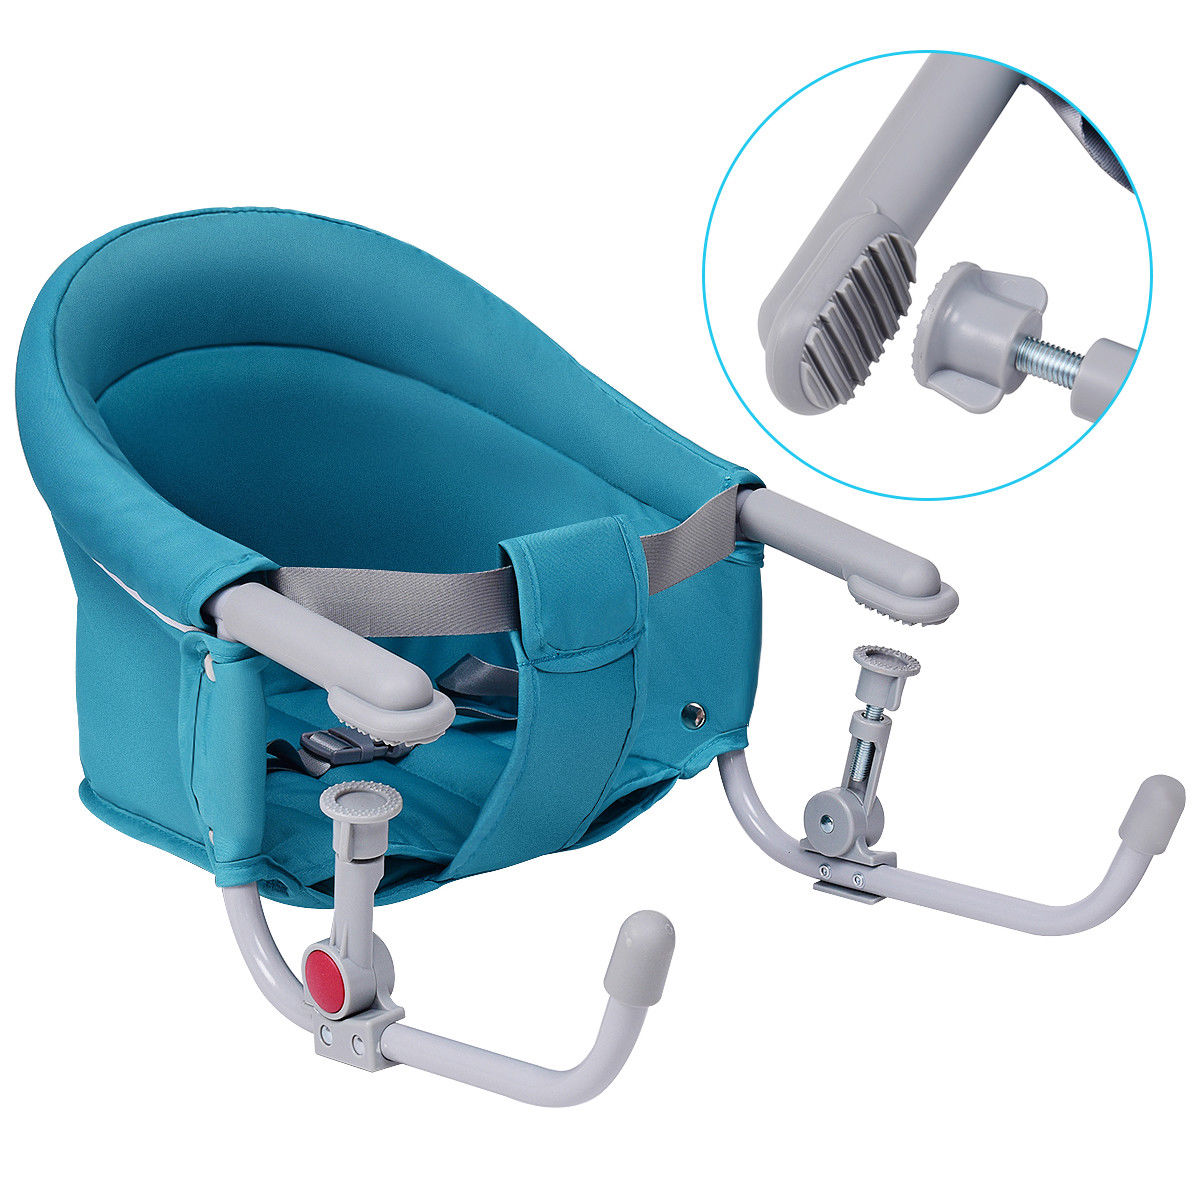 Charmant Gymax Portable Folding Baby Hook On Clip On High Chair Booster Fast Table  Seat Green   Walmart.com